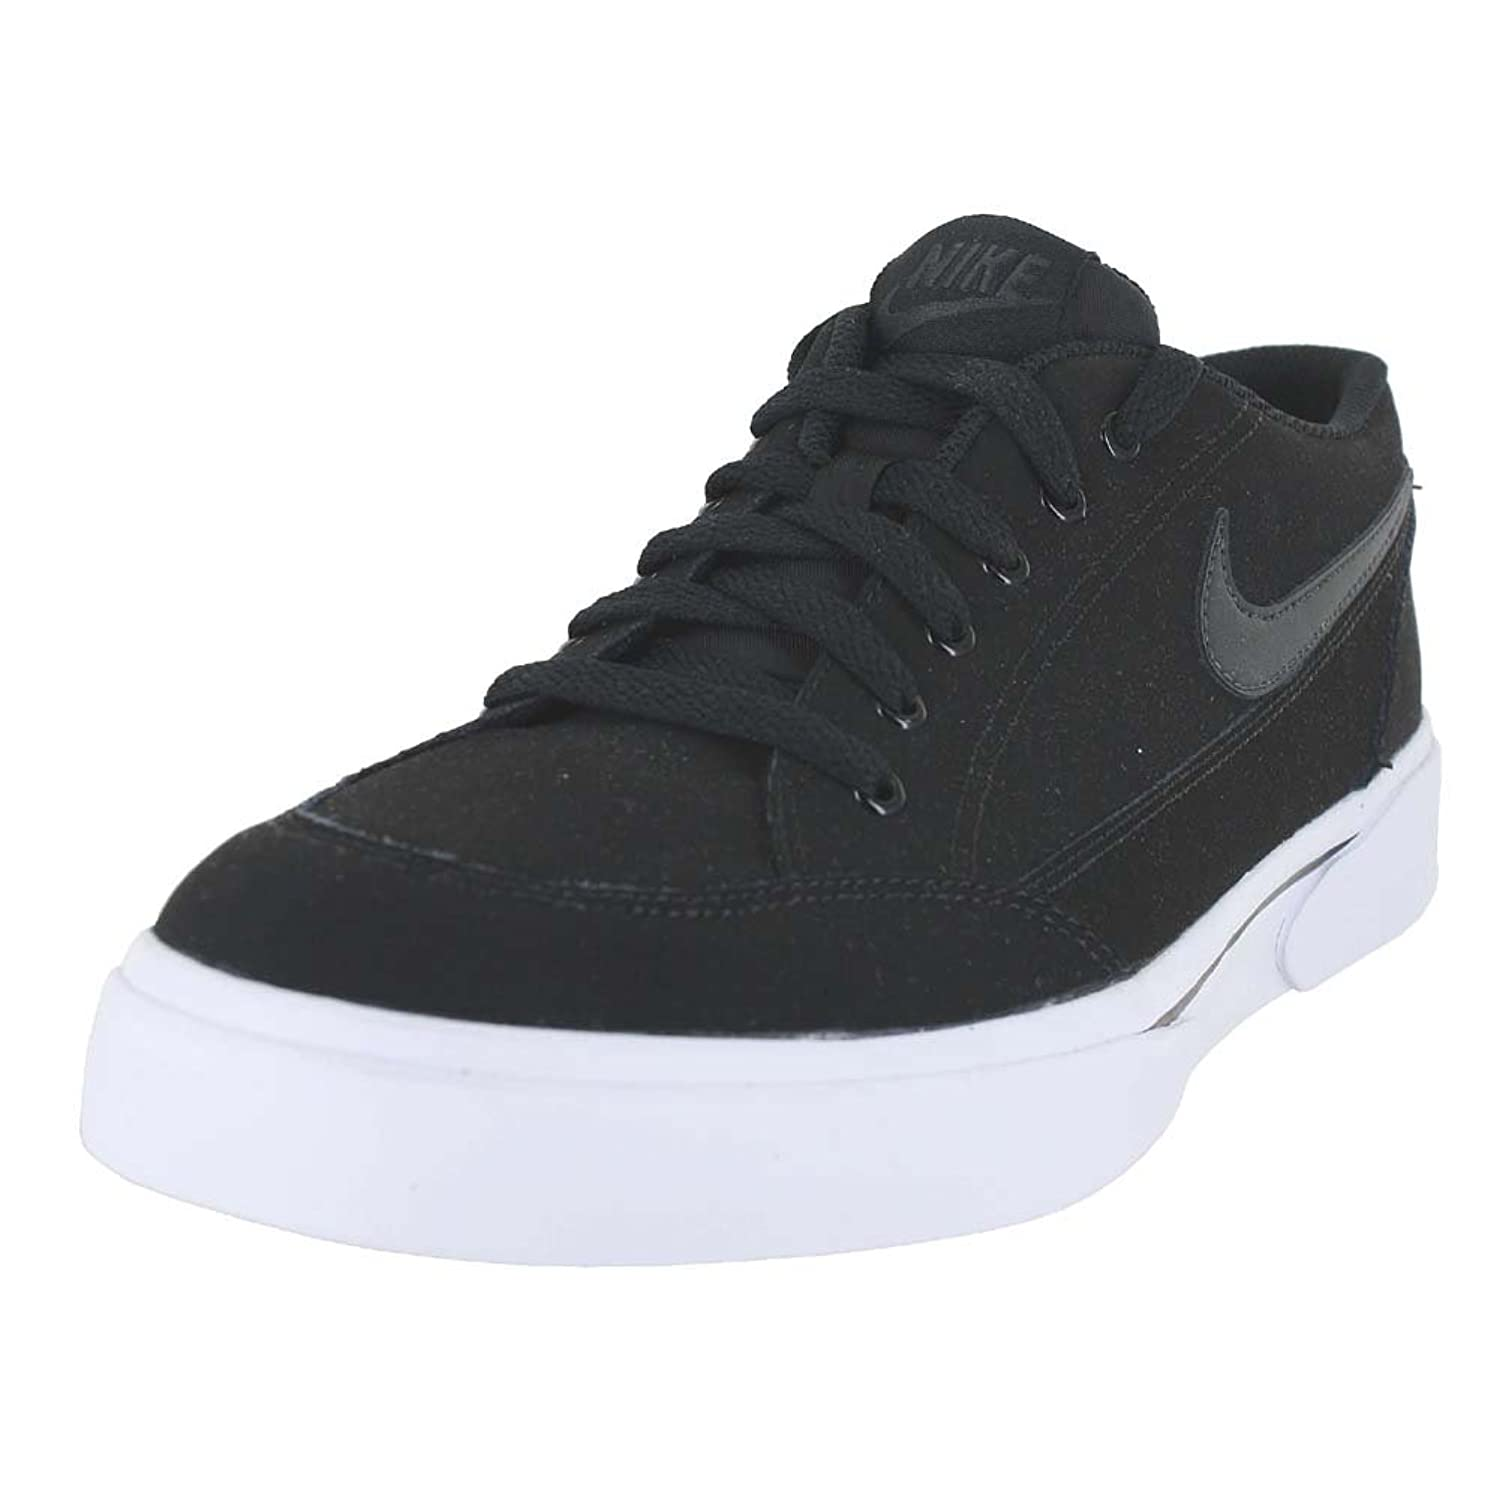 83ff95c79459e Nike GTS '16 Nubuck outlet - cplondon.org.uk